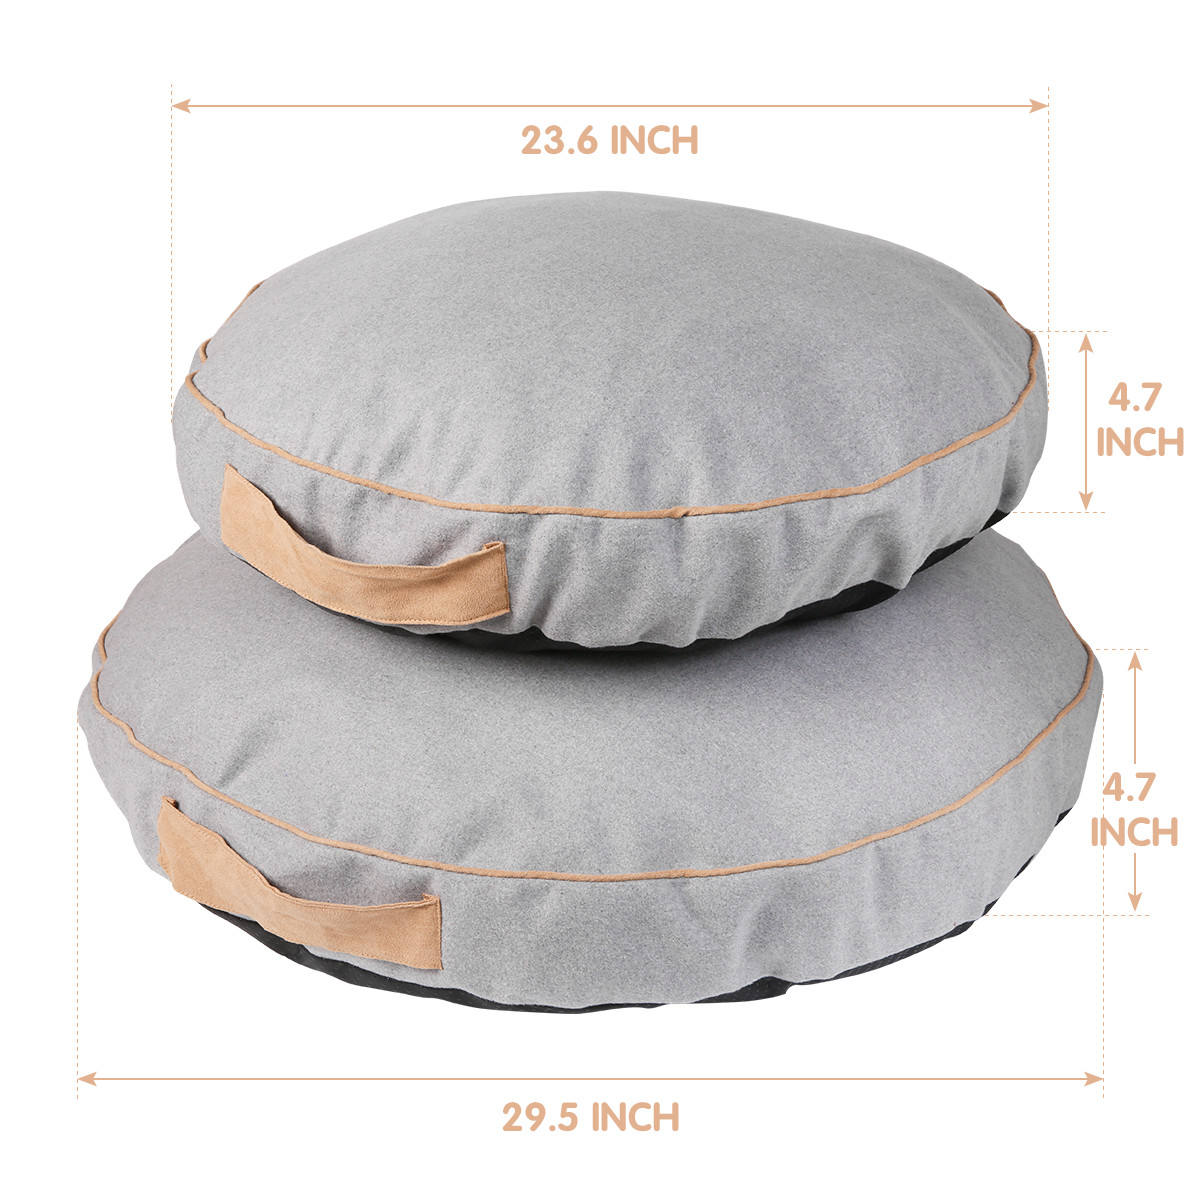 Round Pillow Dog Bed- Round Ball Pet Bed for Small Dogs & Cats Removable Cover Zipped Anti-slip Bottom